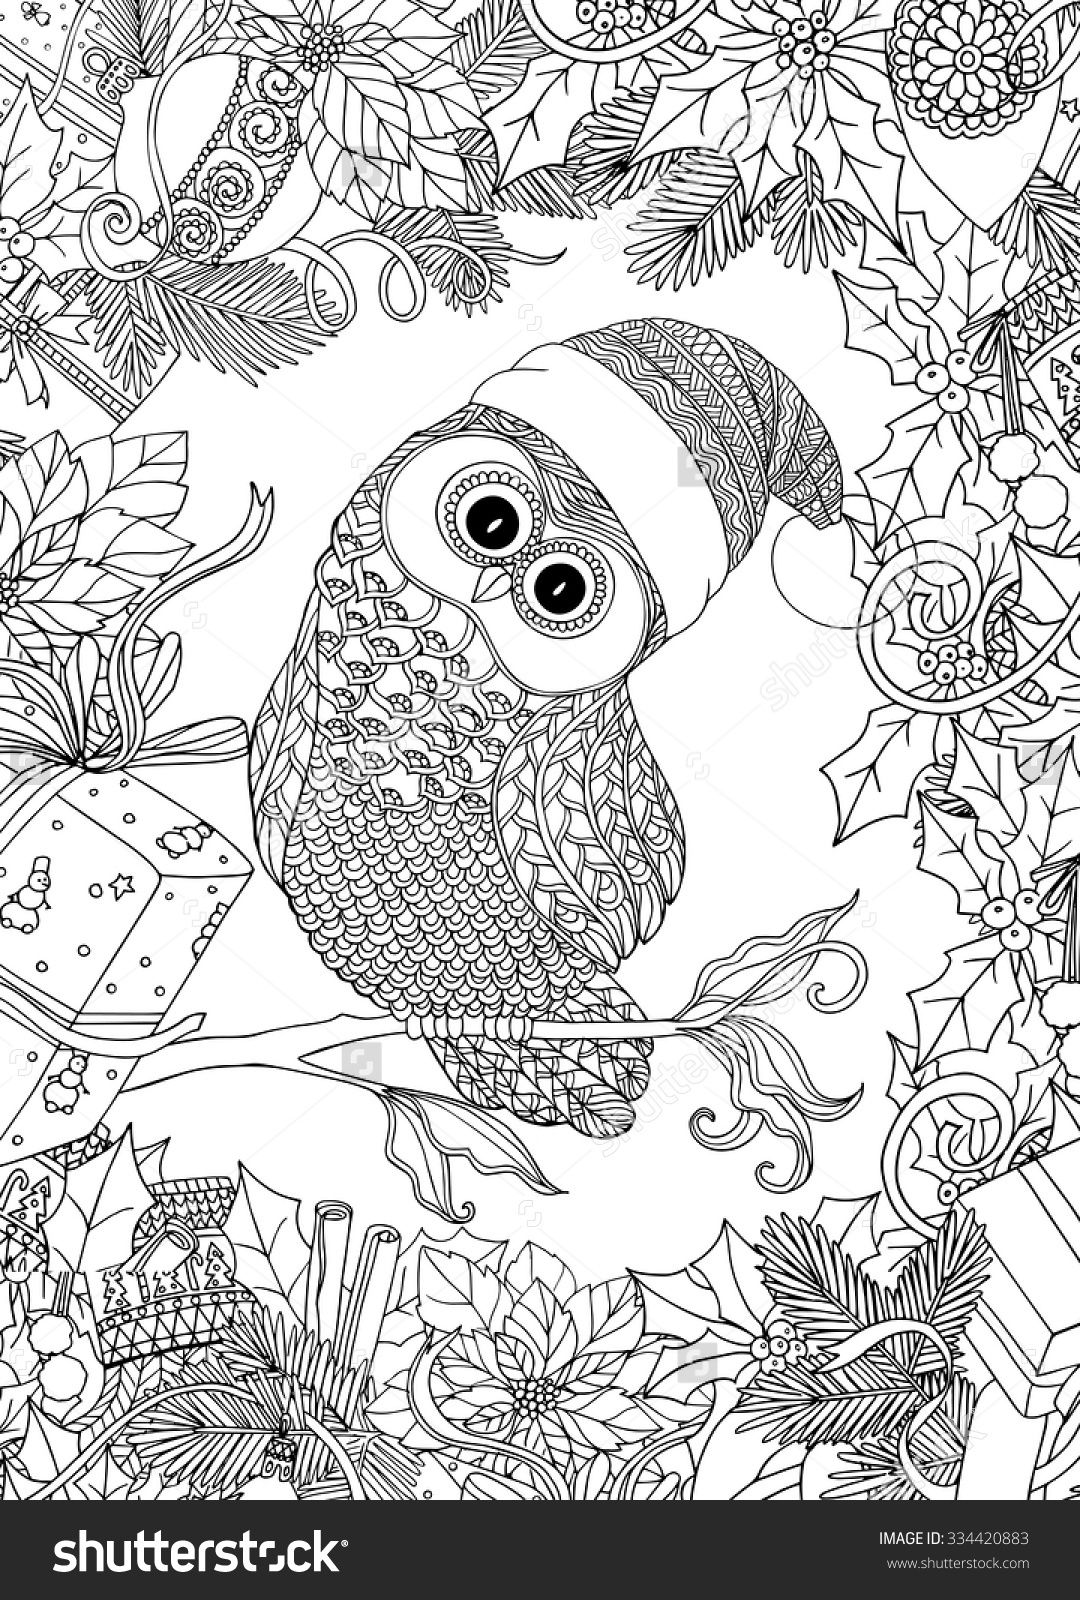 Christmas Coloring Pages Owls With Book For Adult And Older Children Page Cute